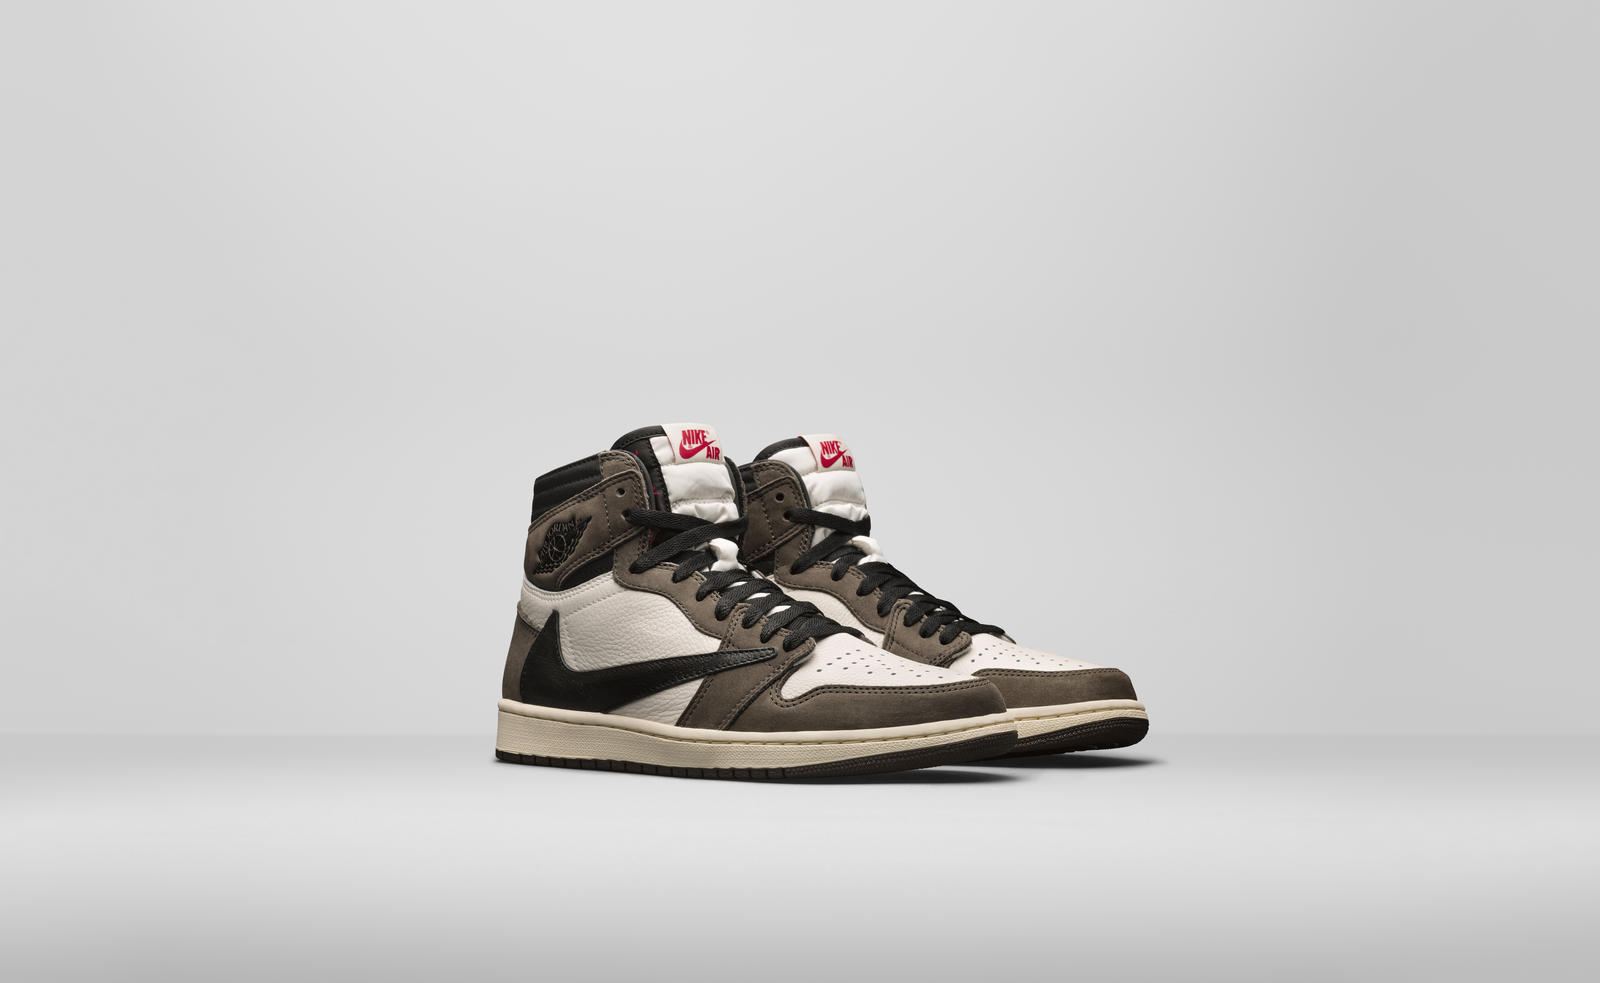 info for ff02f 9f627 After a limited release in February, the Travis Scott x Air Jordan 1 High  OG will release globally 11th of May. In addition to the kicks Scott and  Jordan ...